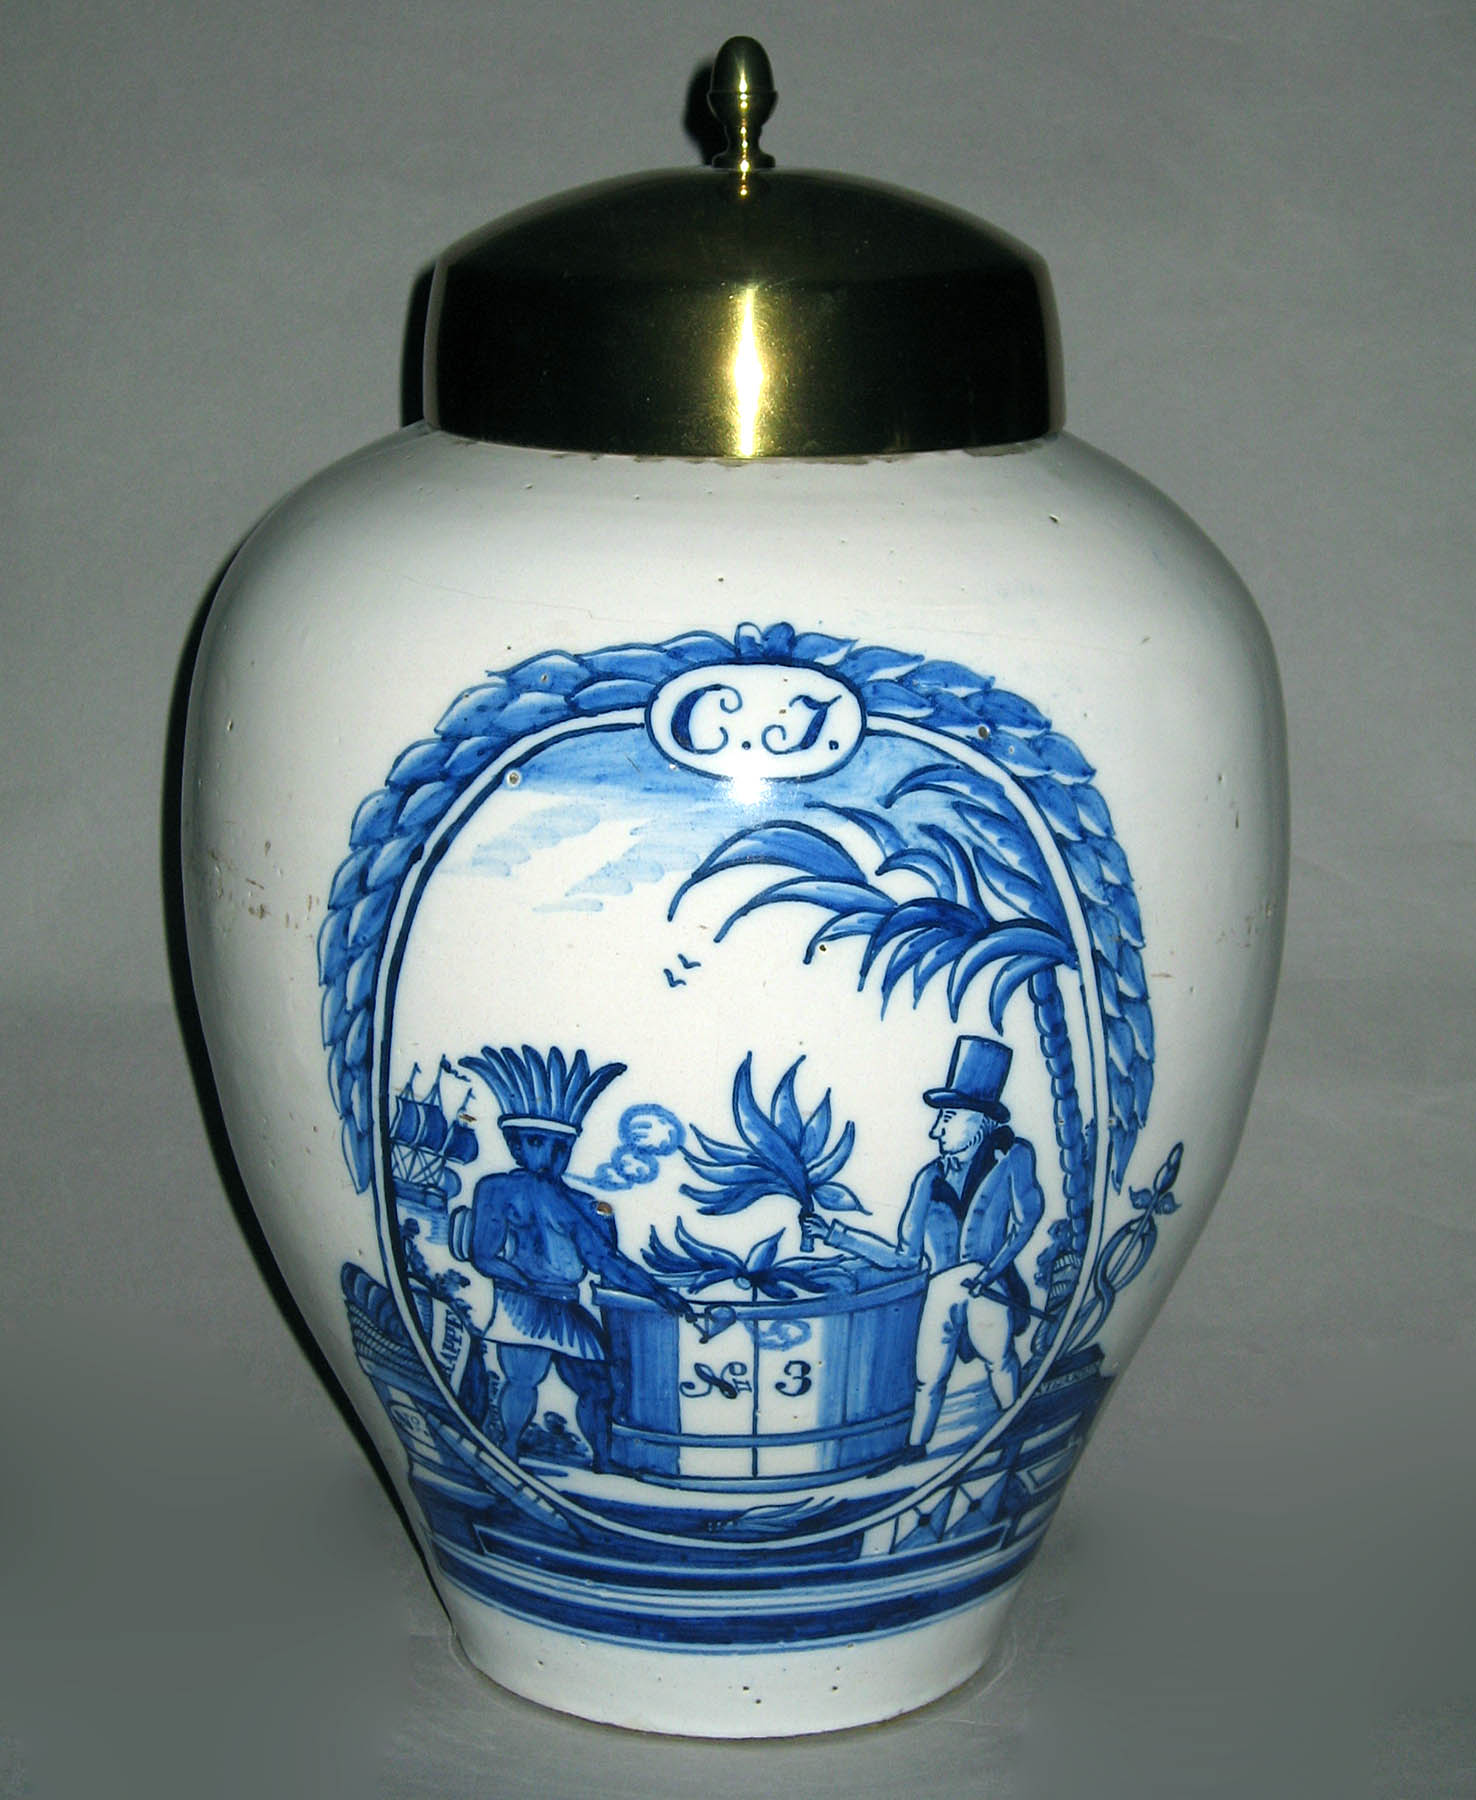 1952.0312.001 Delft tobacco jar